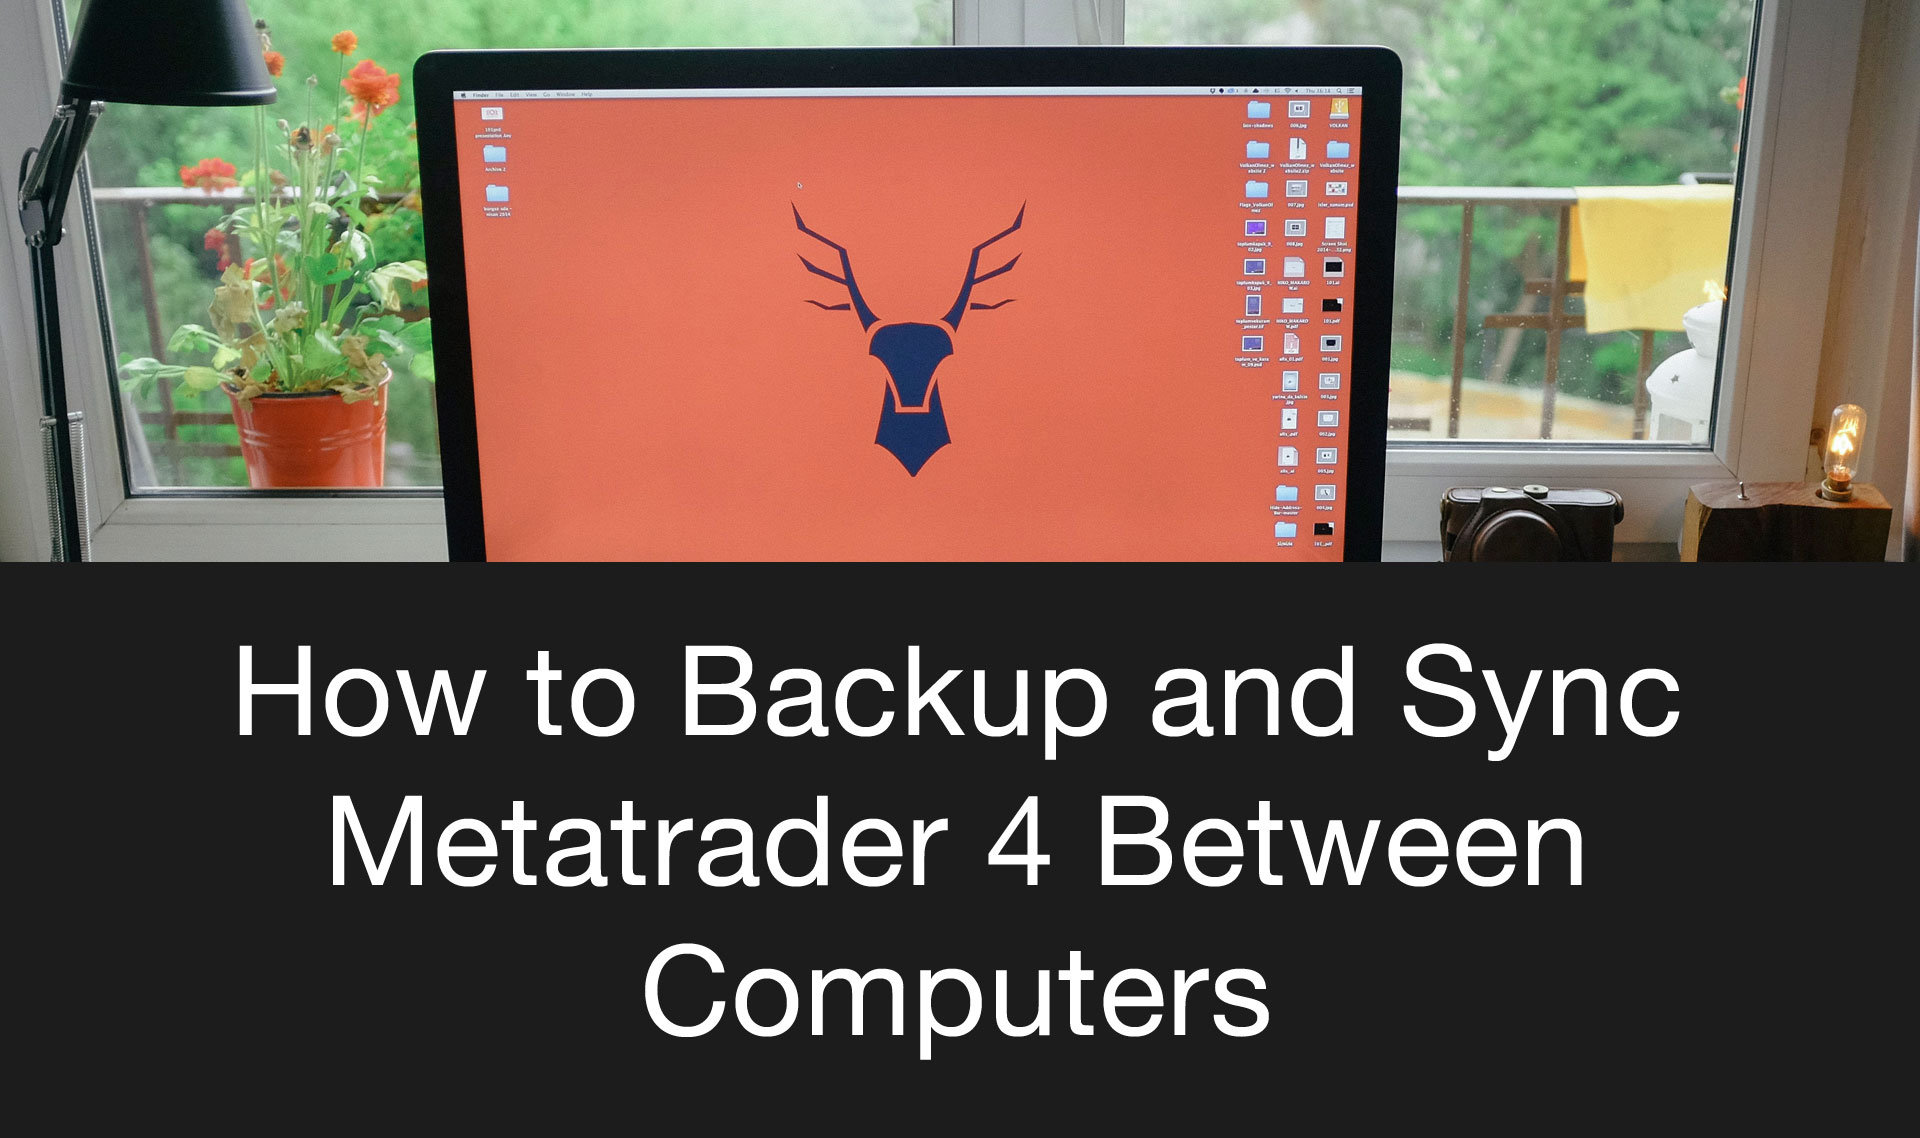 Backup and Sync MT4 with Dropbox